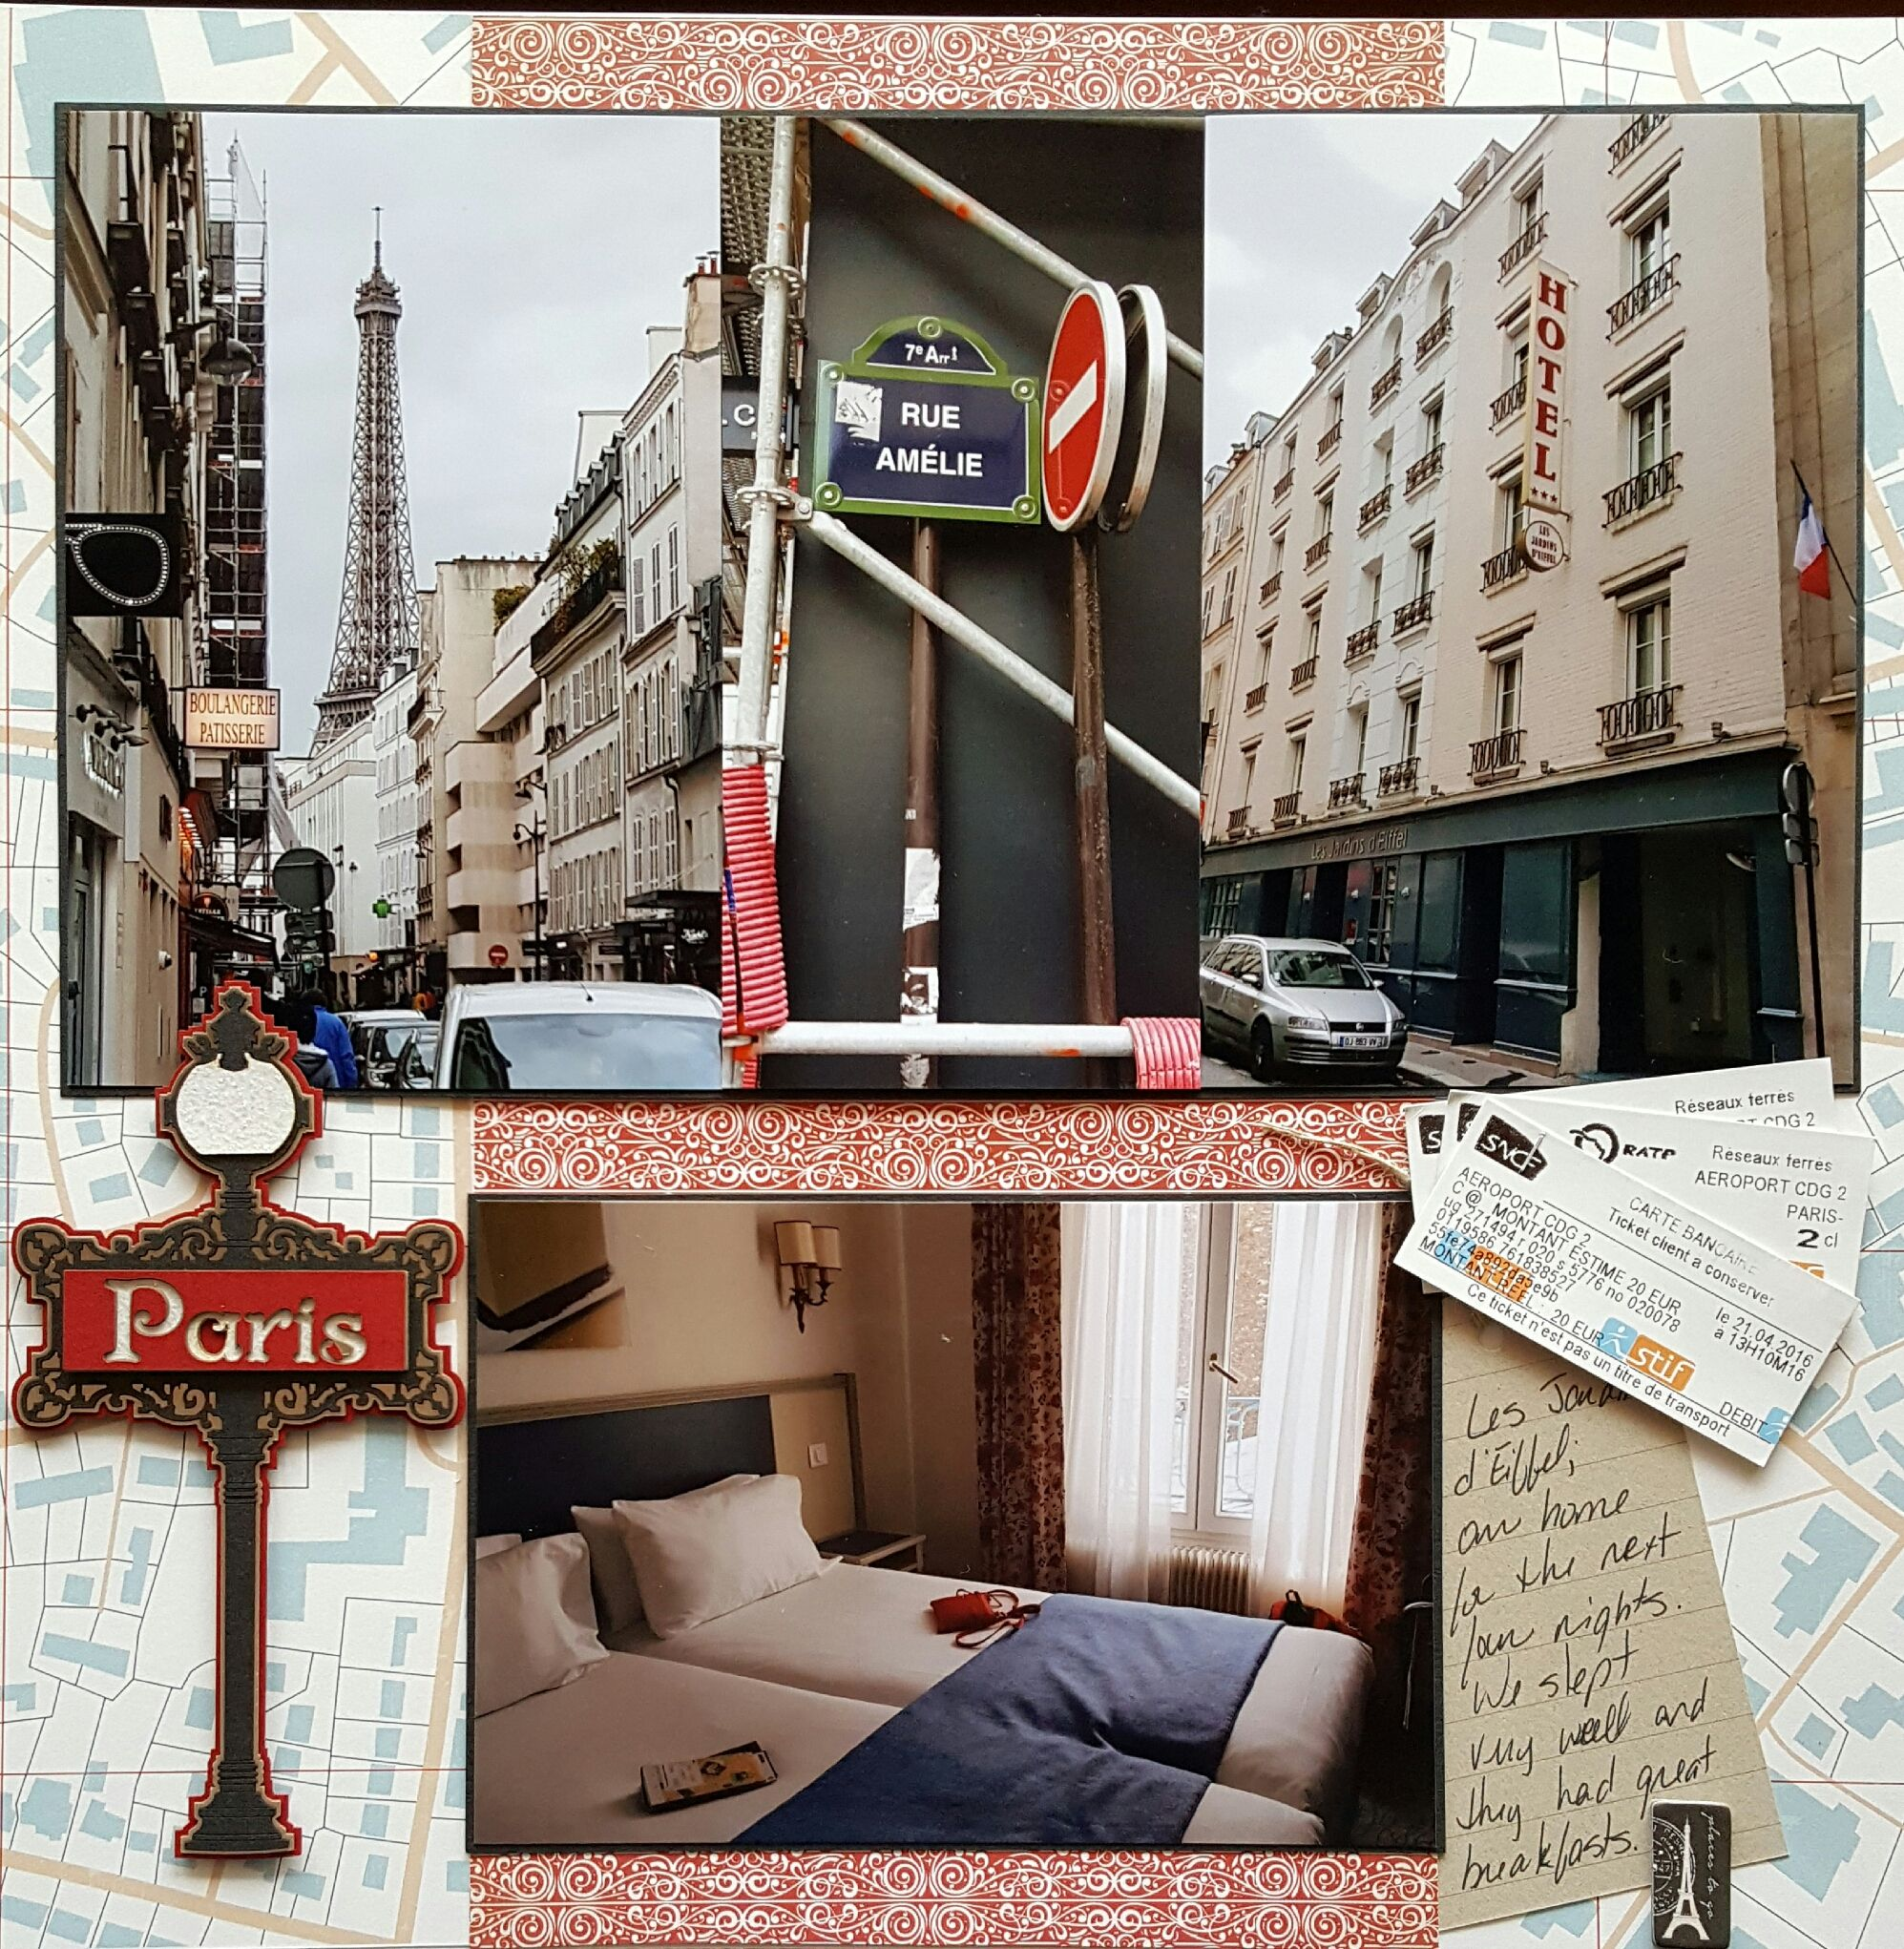 Les Jardins d Eiffel Queen and pany Travel Collection 12 x